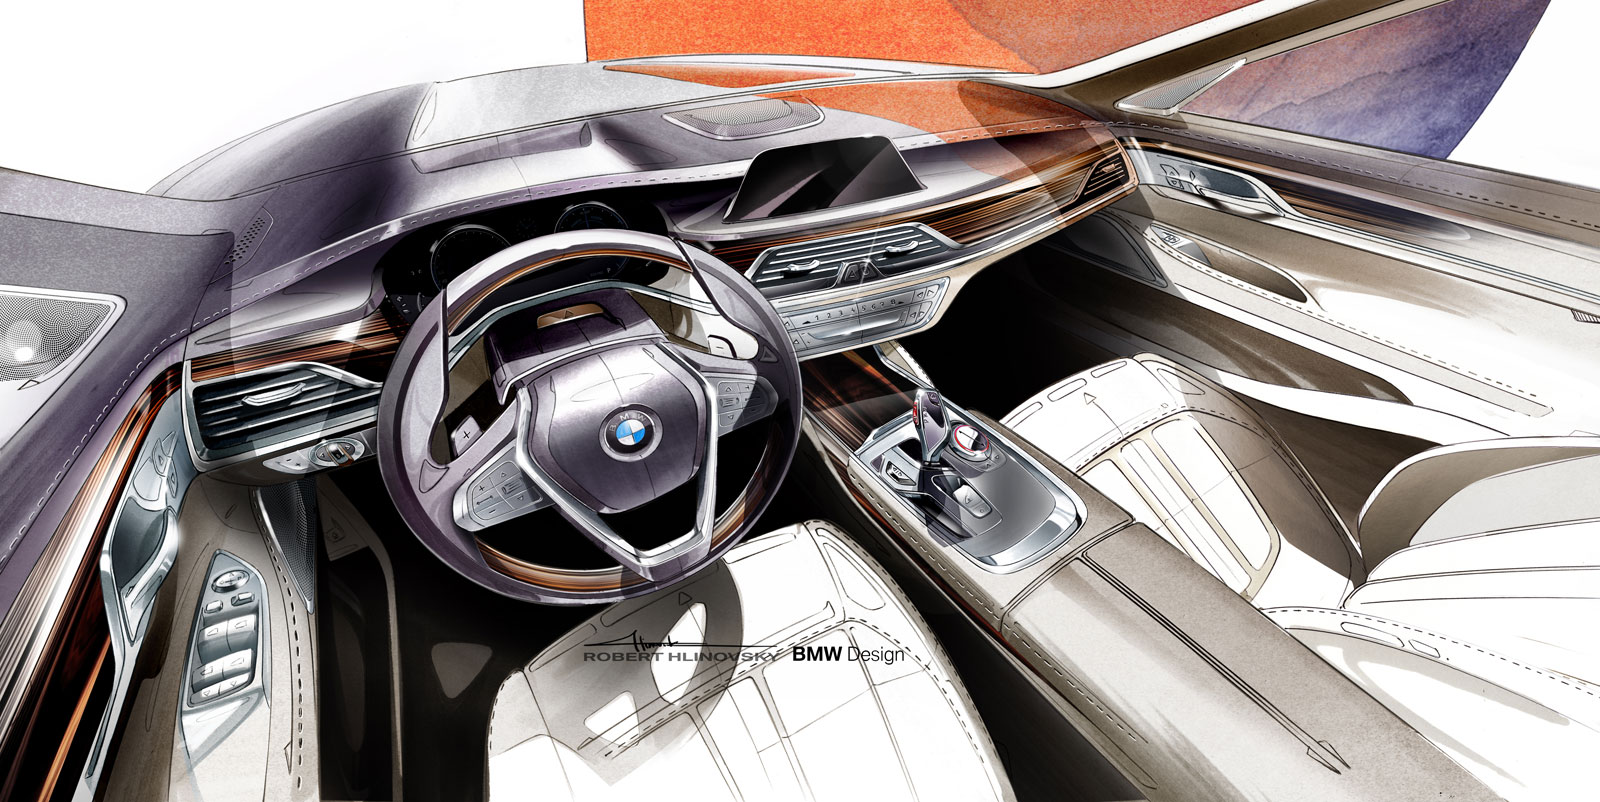 bmw 7 series interior design sketch car body design. Black Bedroom Furniture Sets. Home Design Ideas